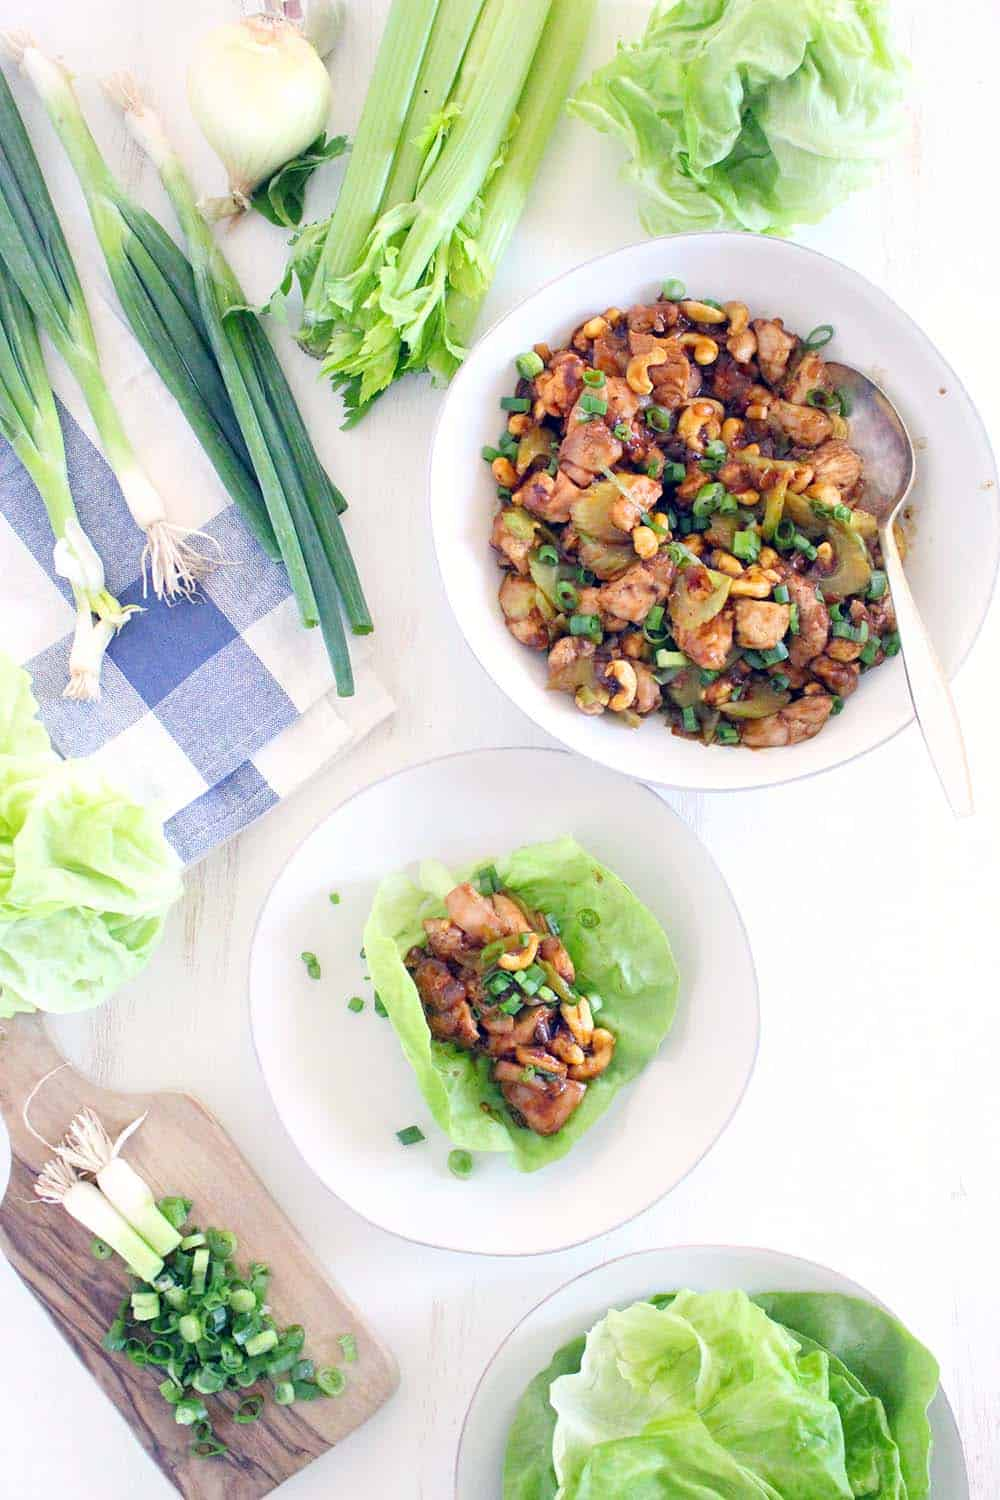 Chicken Cashew Lettuce Wraps | A refreshing, flavorful, spicy dish that's WAY better than PF Chang's lettuce wraps! Best of all, it takes only about 20 minutes to make. A perfect, protein-packed summer dish.